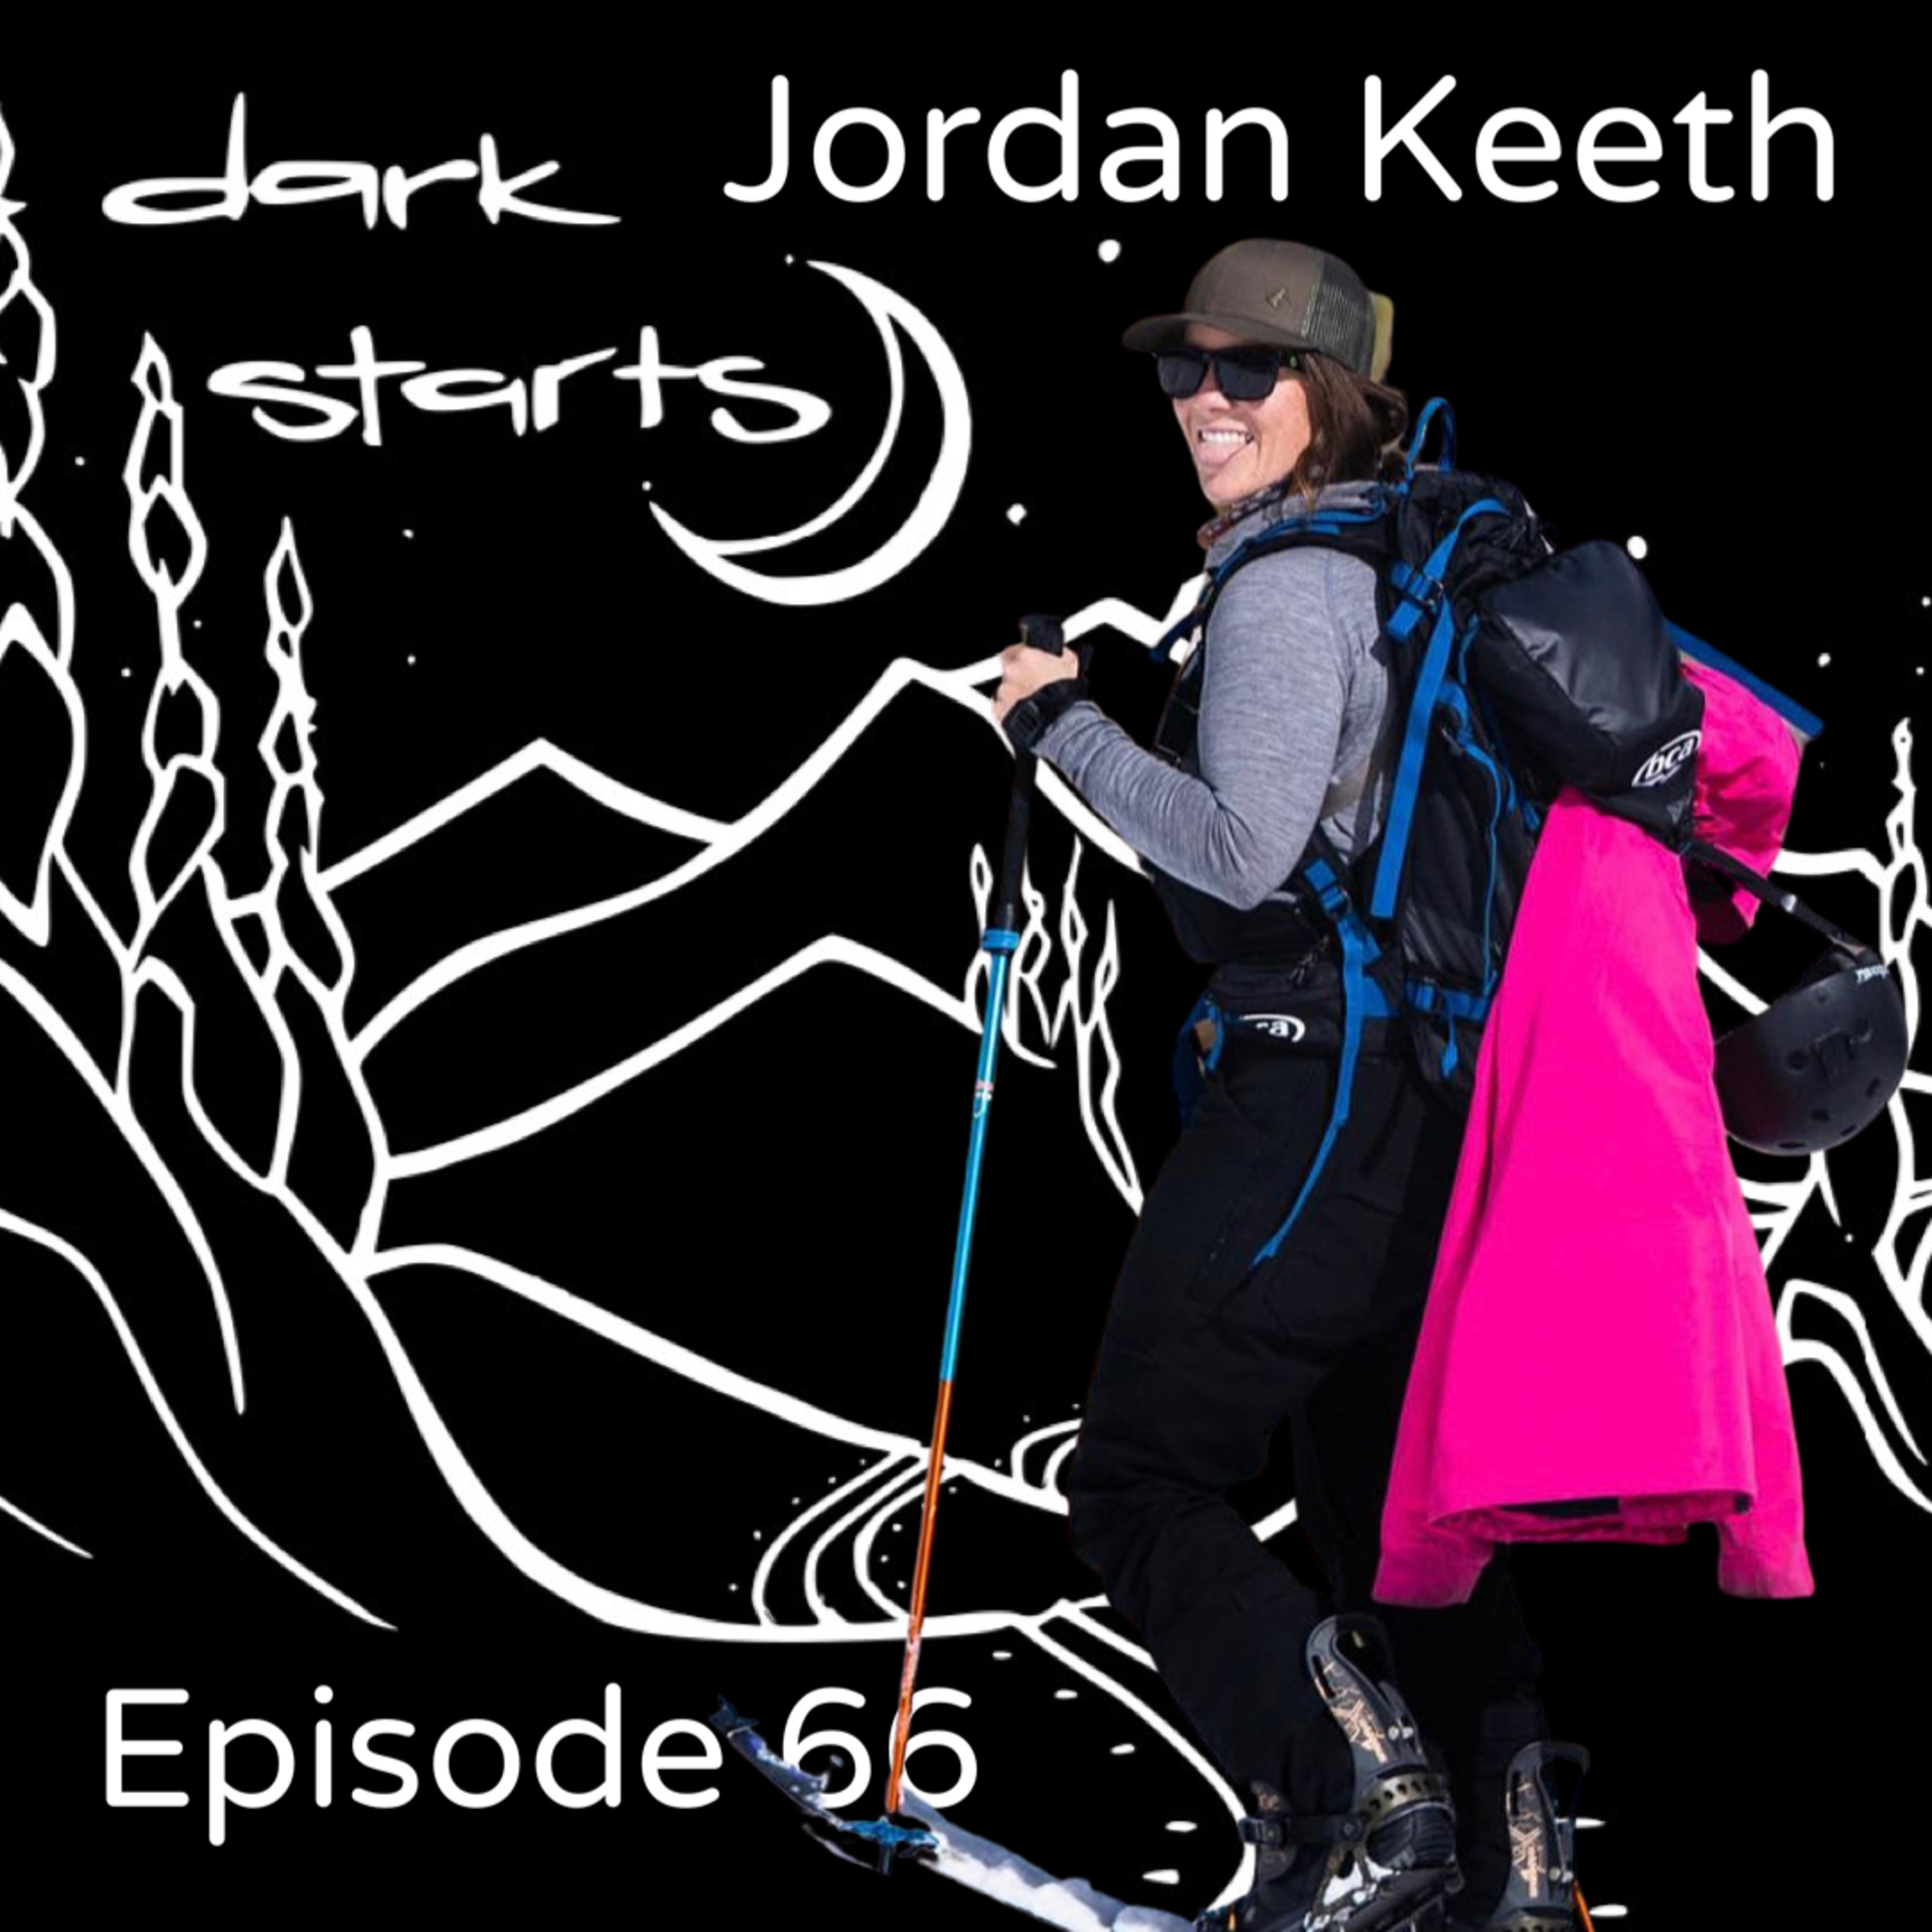 Shredding the bar with Jordan Keeth   With her gypsy soul and a passion for playing in the snow she loves everything winter has to offer